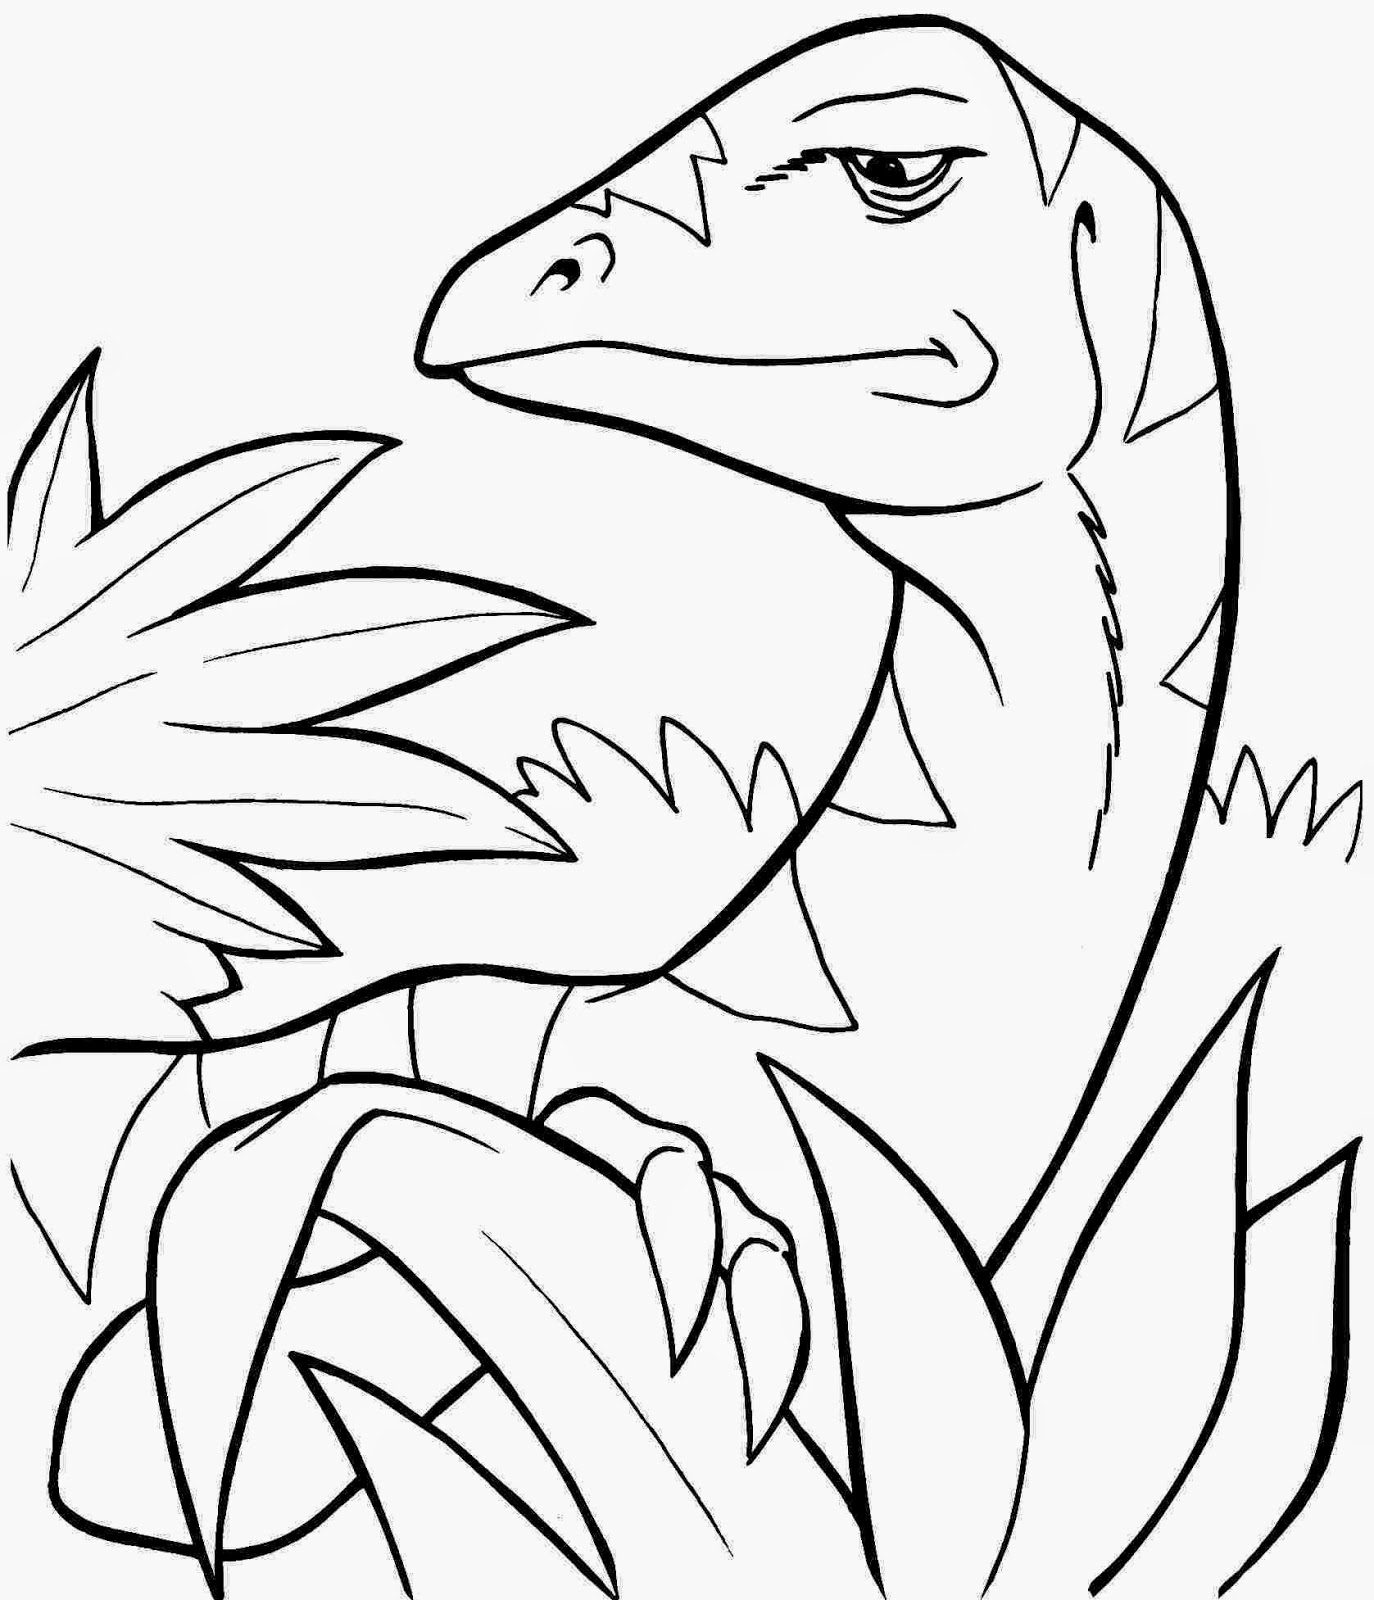 Best Printable Dinosaur Coloring Page